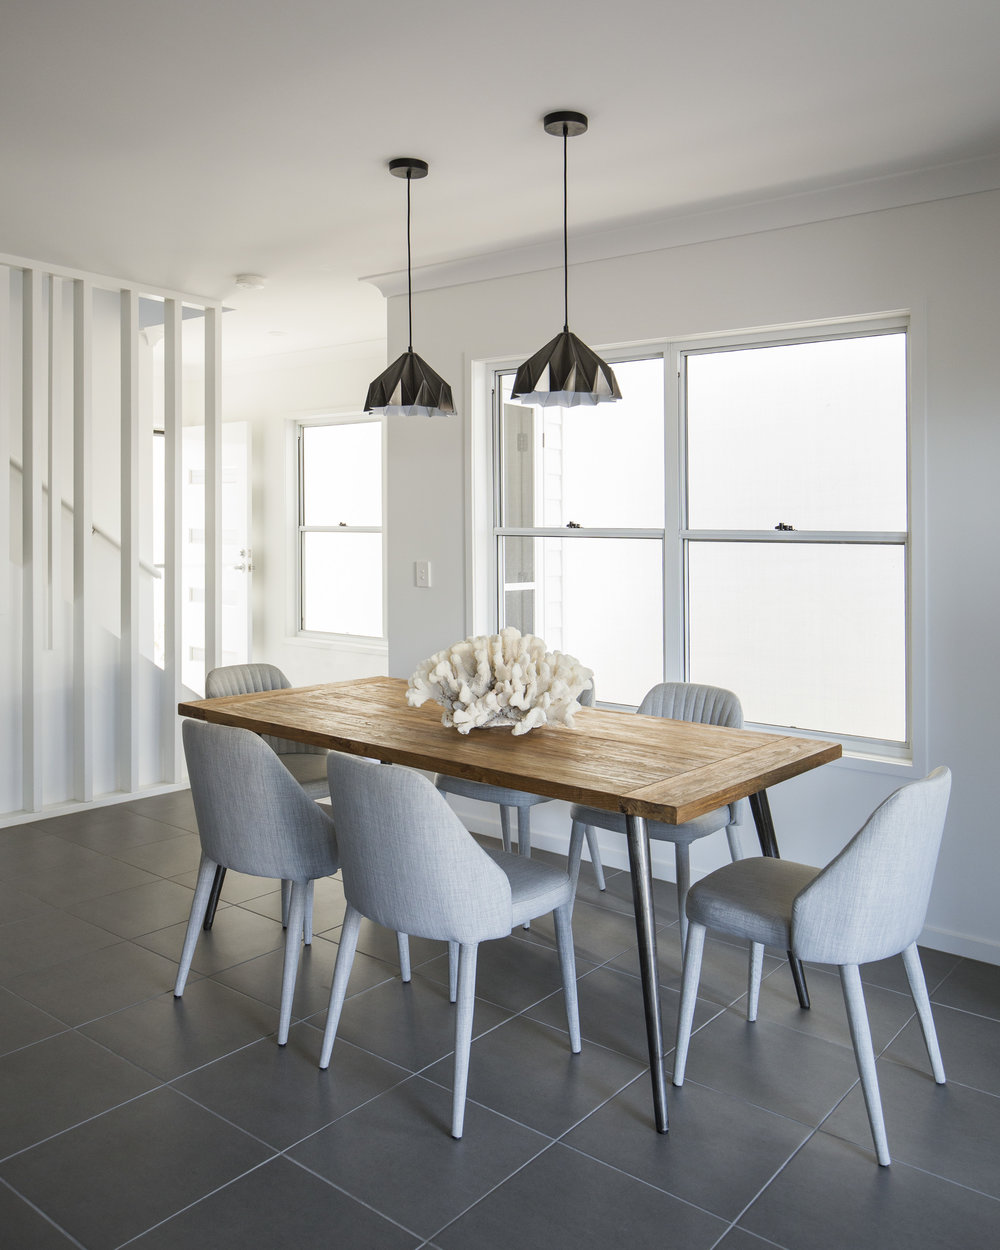 Casuarina Townhouse - Interior Design - Tanika Blair Stying & Photography - IMG_9162.jpg